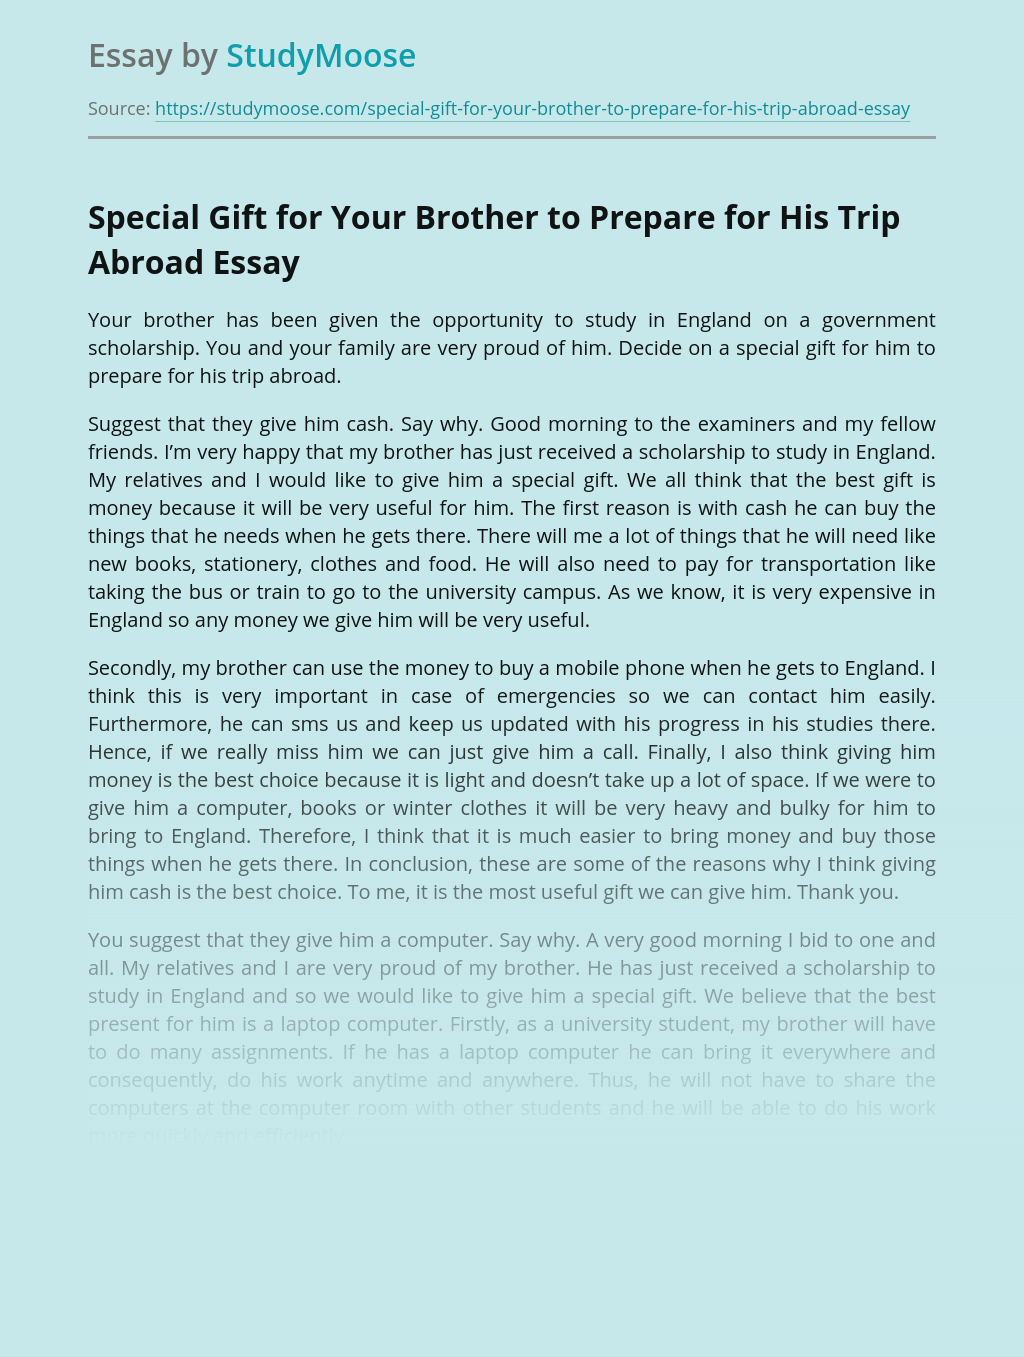 Special Gift for Your Brother to Prepare for His Trip Abroad